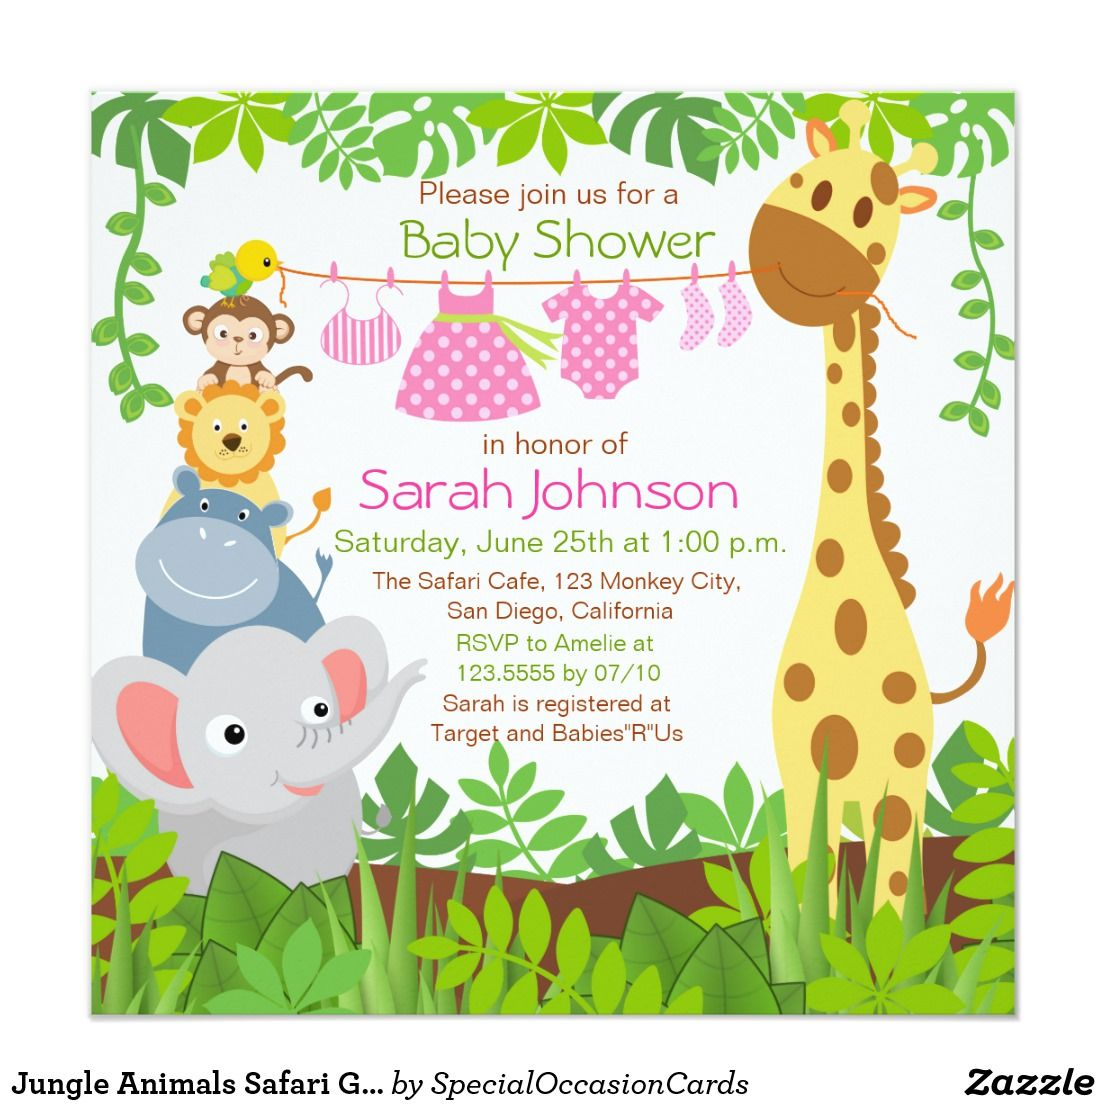 Jungle Animals Safari Girl Baby Shower Invitation Zazzle Com Baby Shower Invites For Girl Baby Shower Invitations For Boys Baby Shower Invitations